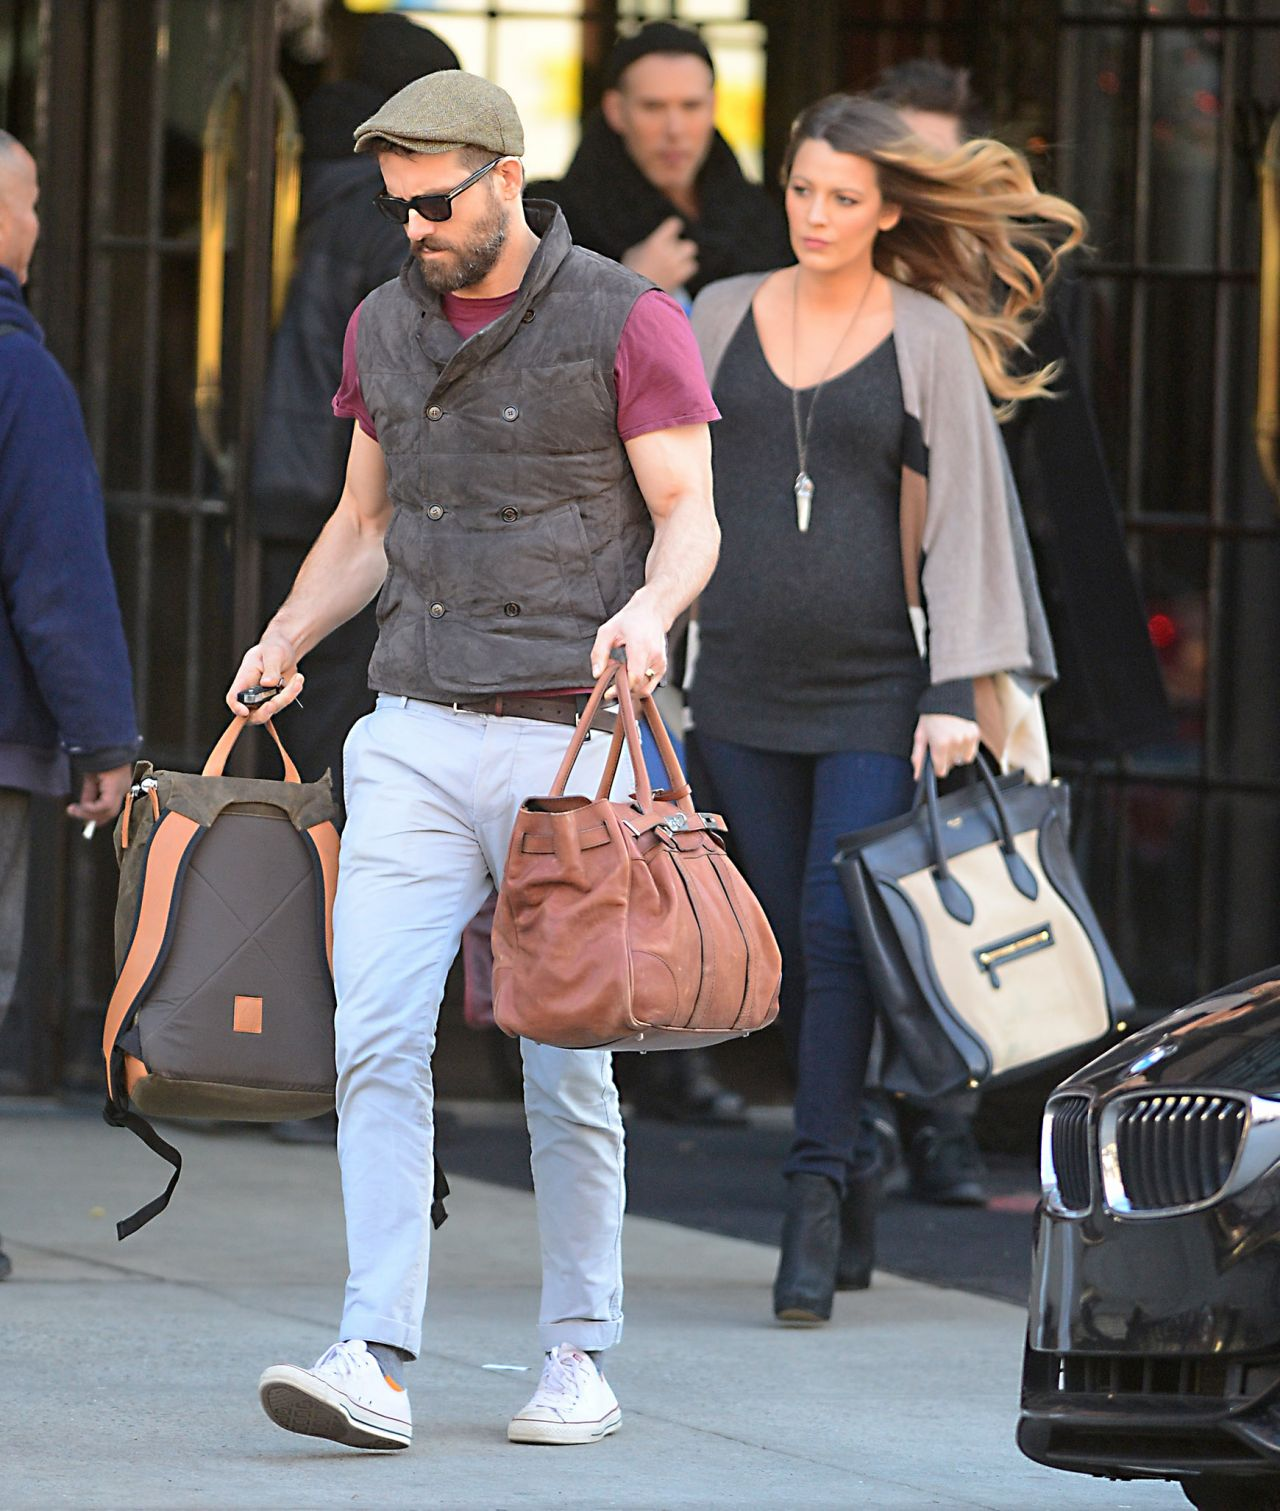 Blake Lively And Her Husband Ryan Reynolds Out In NYC